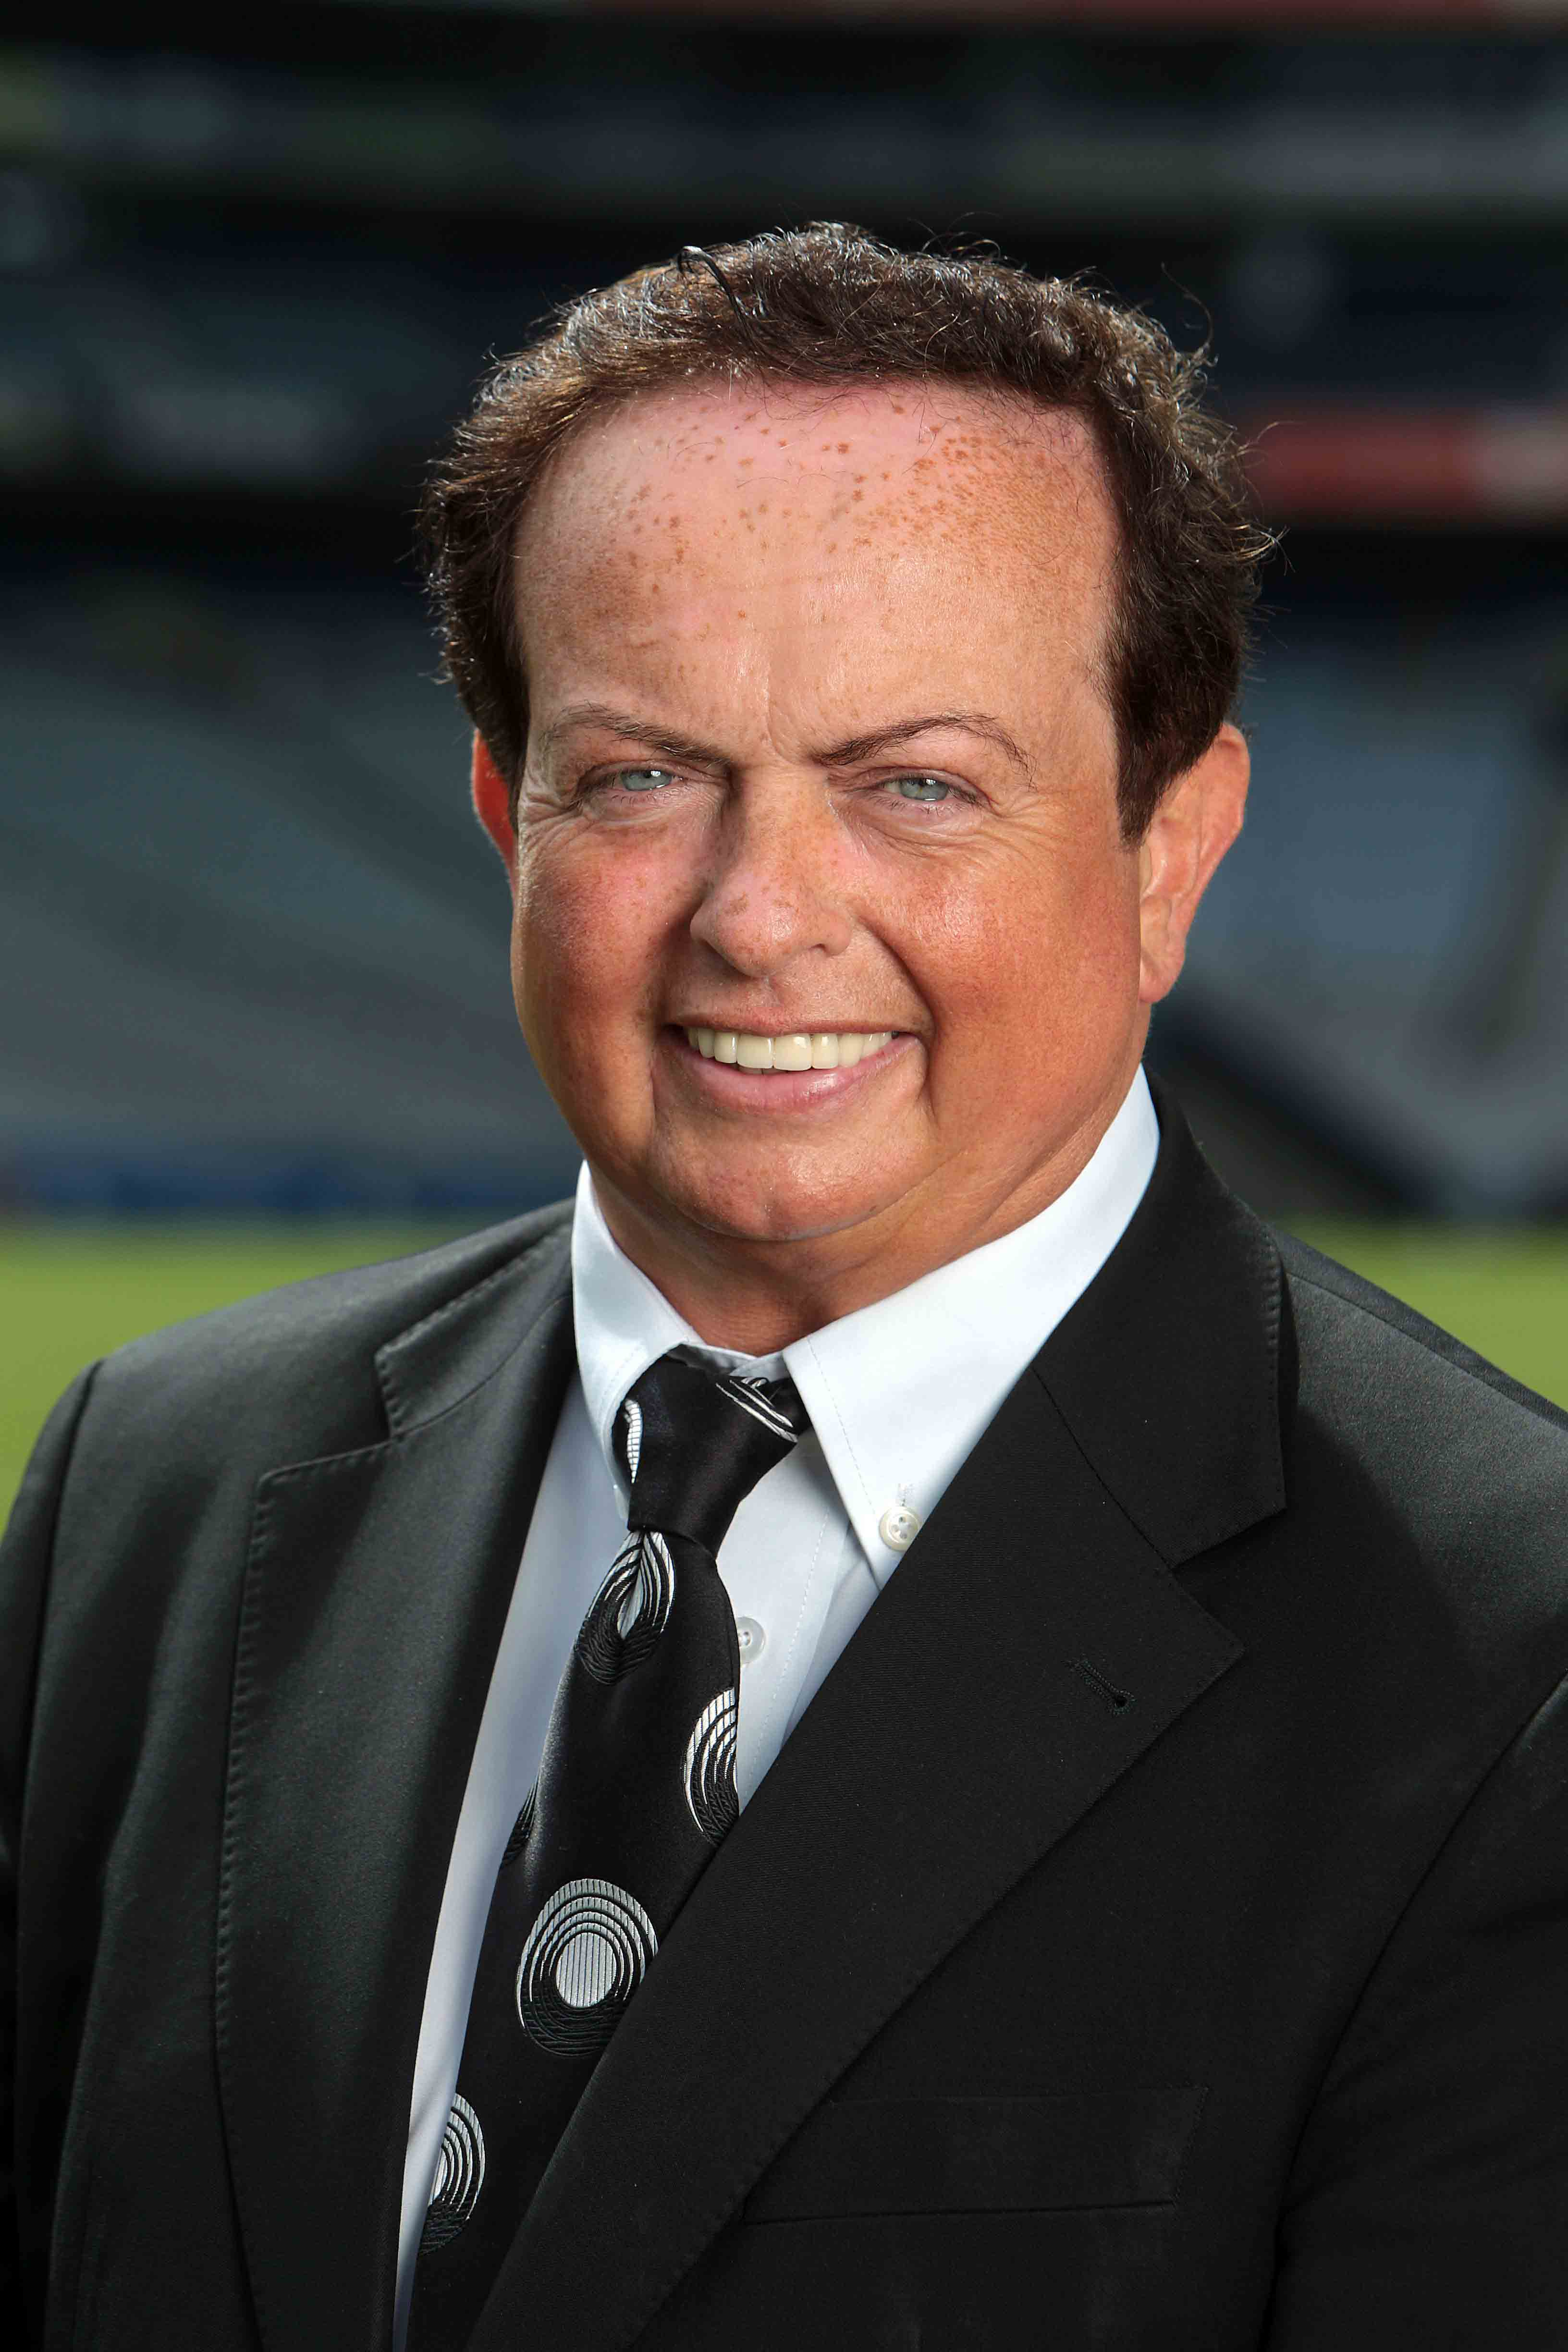 MARTY MORRISSEY ANNOUNCED AS RTÉ's NEW GAELIC GAMES CORRESPONDENT